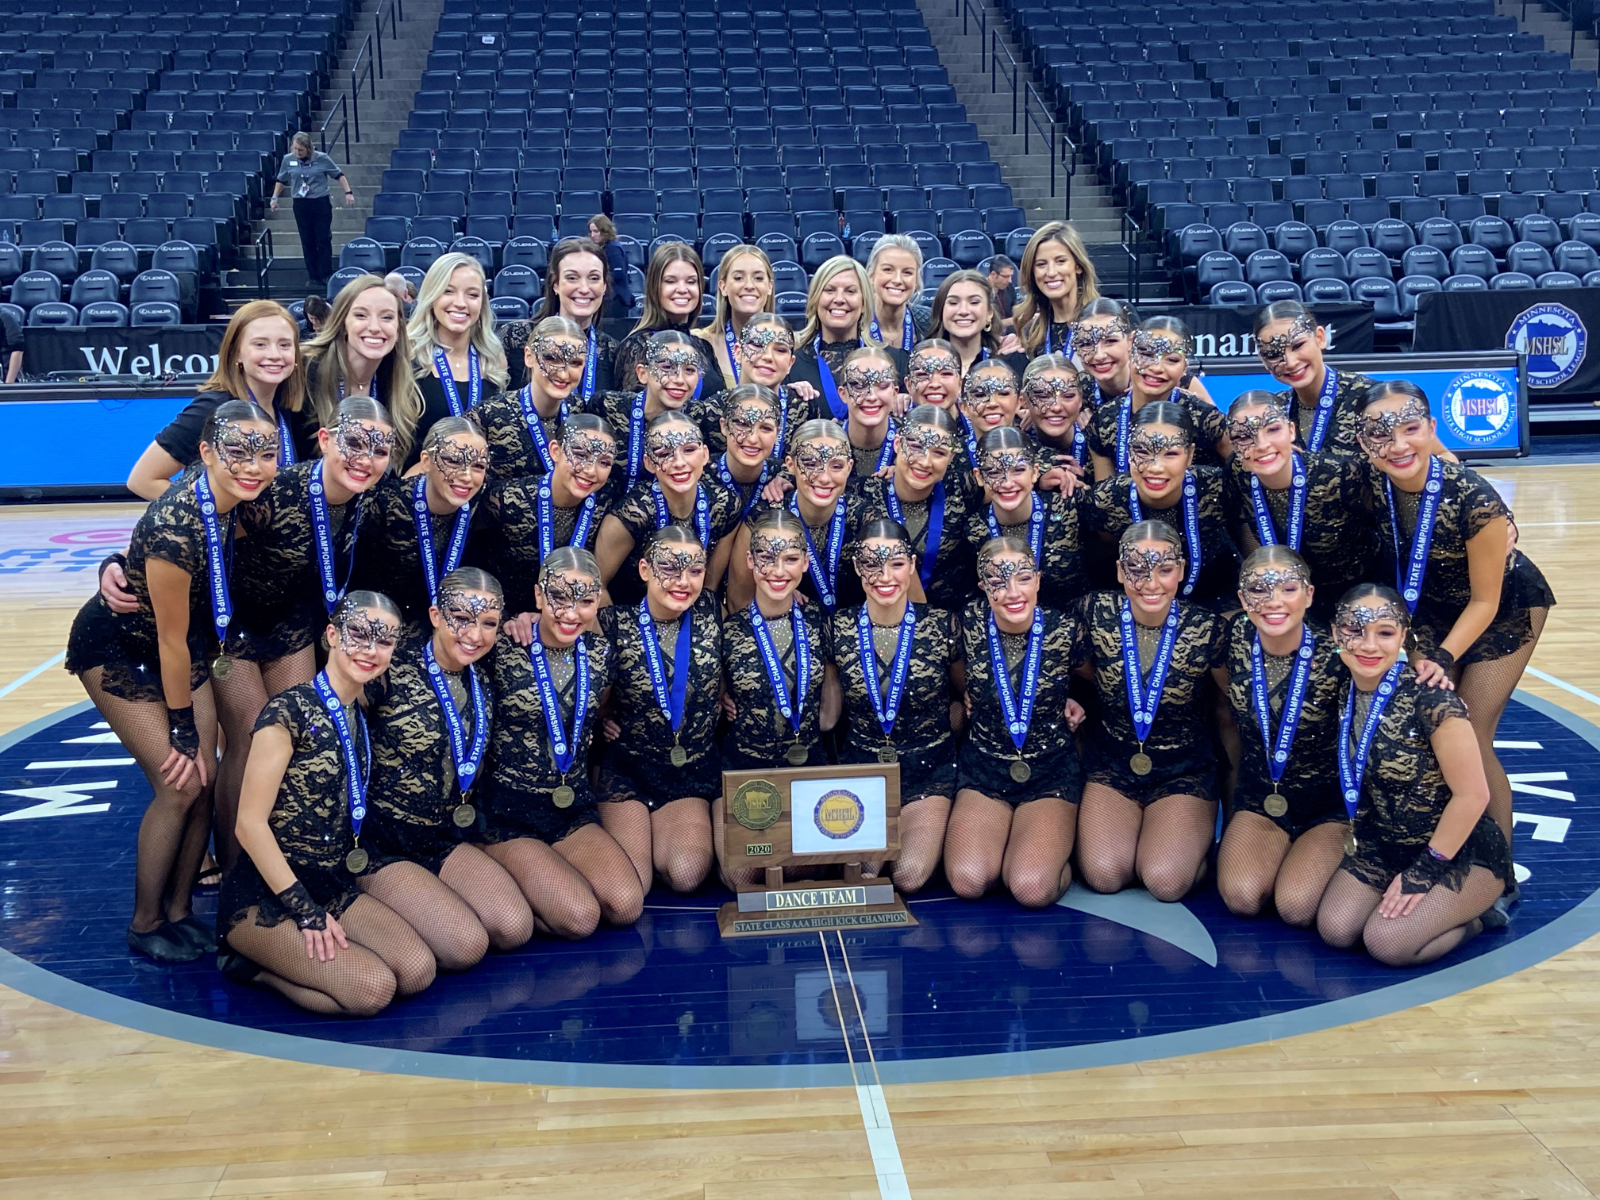 LDT is STATE CHAMPIONS in BOTH Jazz and High Kick!